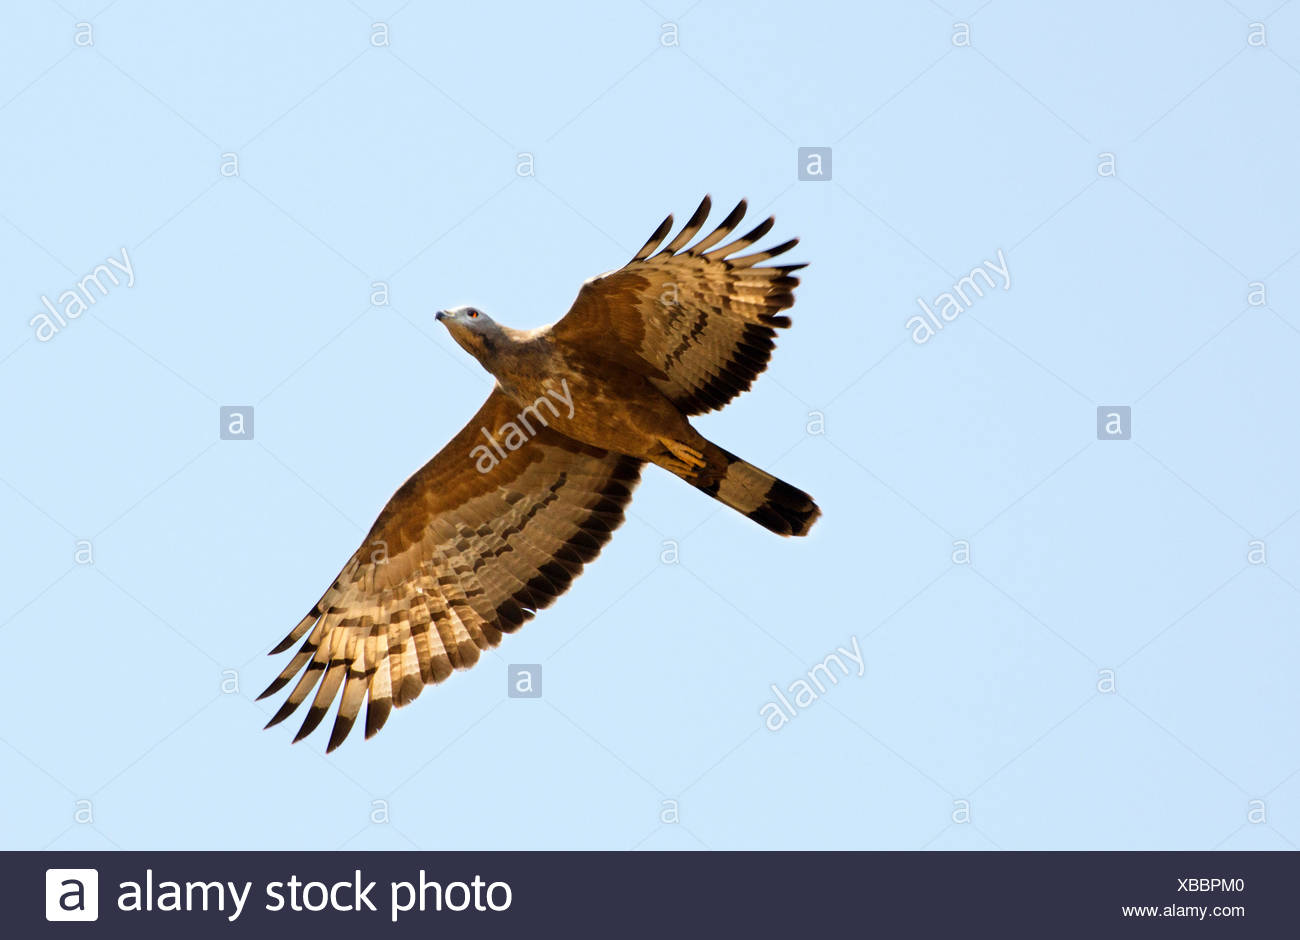 Crested Honey Buzzard, Oriental honey buzzard (Pernis ptilorhynchus), in flight, India, Madhya Pradesh - Stock Image